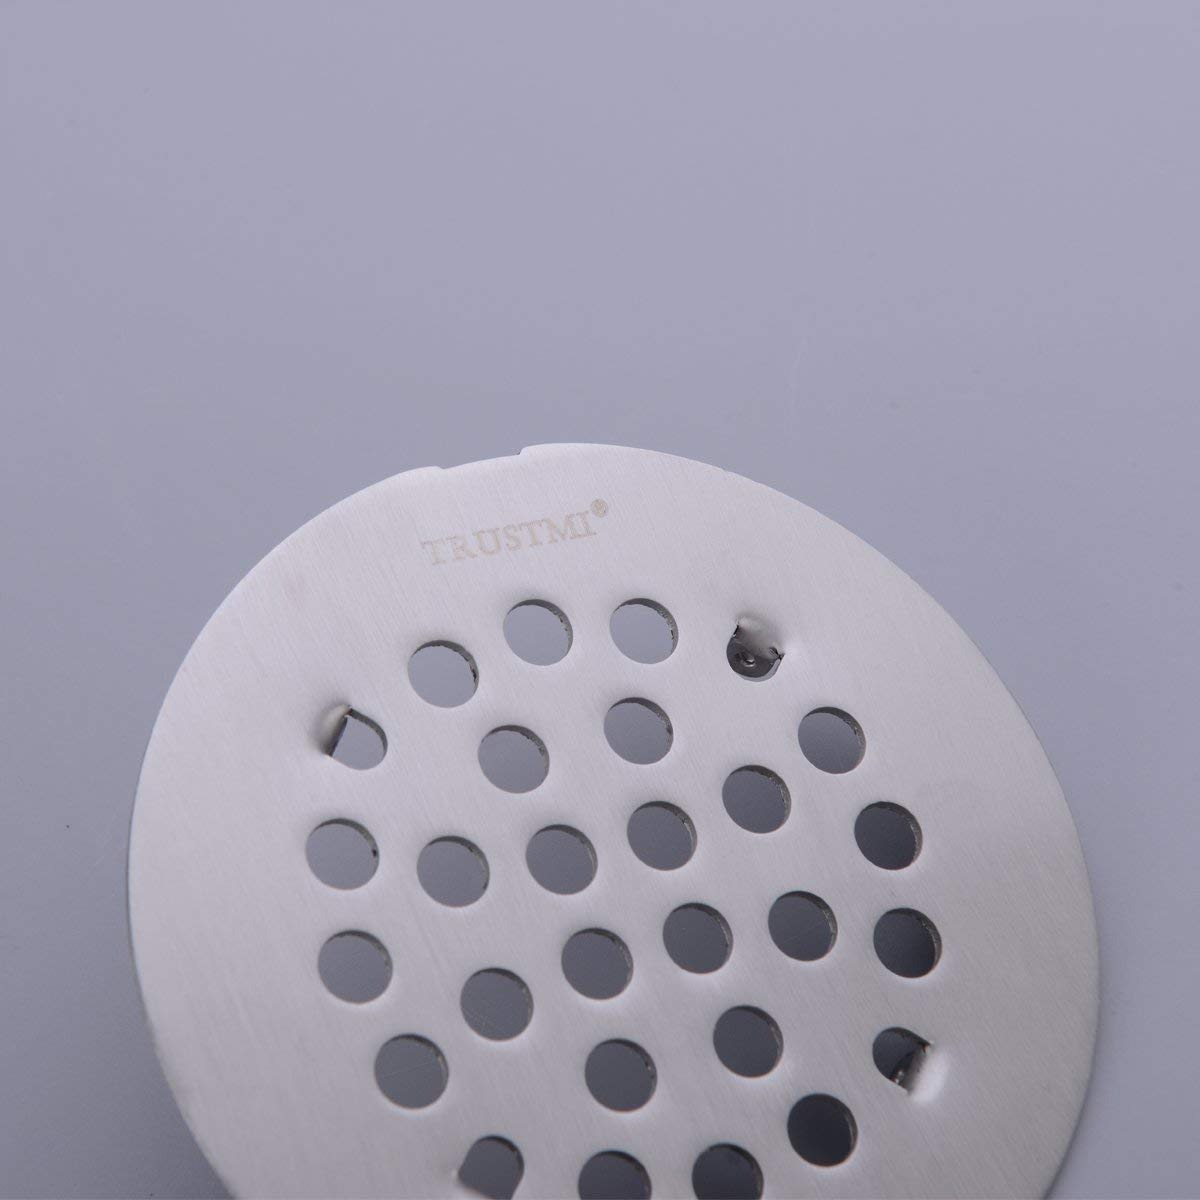 TRUSTMI 4 1//4-inch Screw-in Shower Drain Grate Replacement Cover Brushed